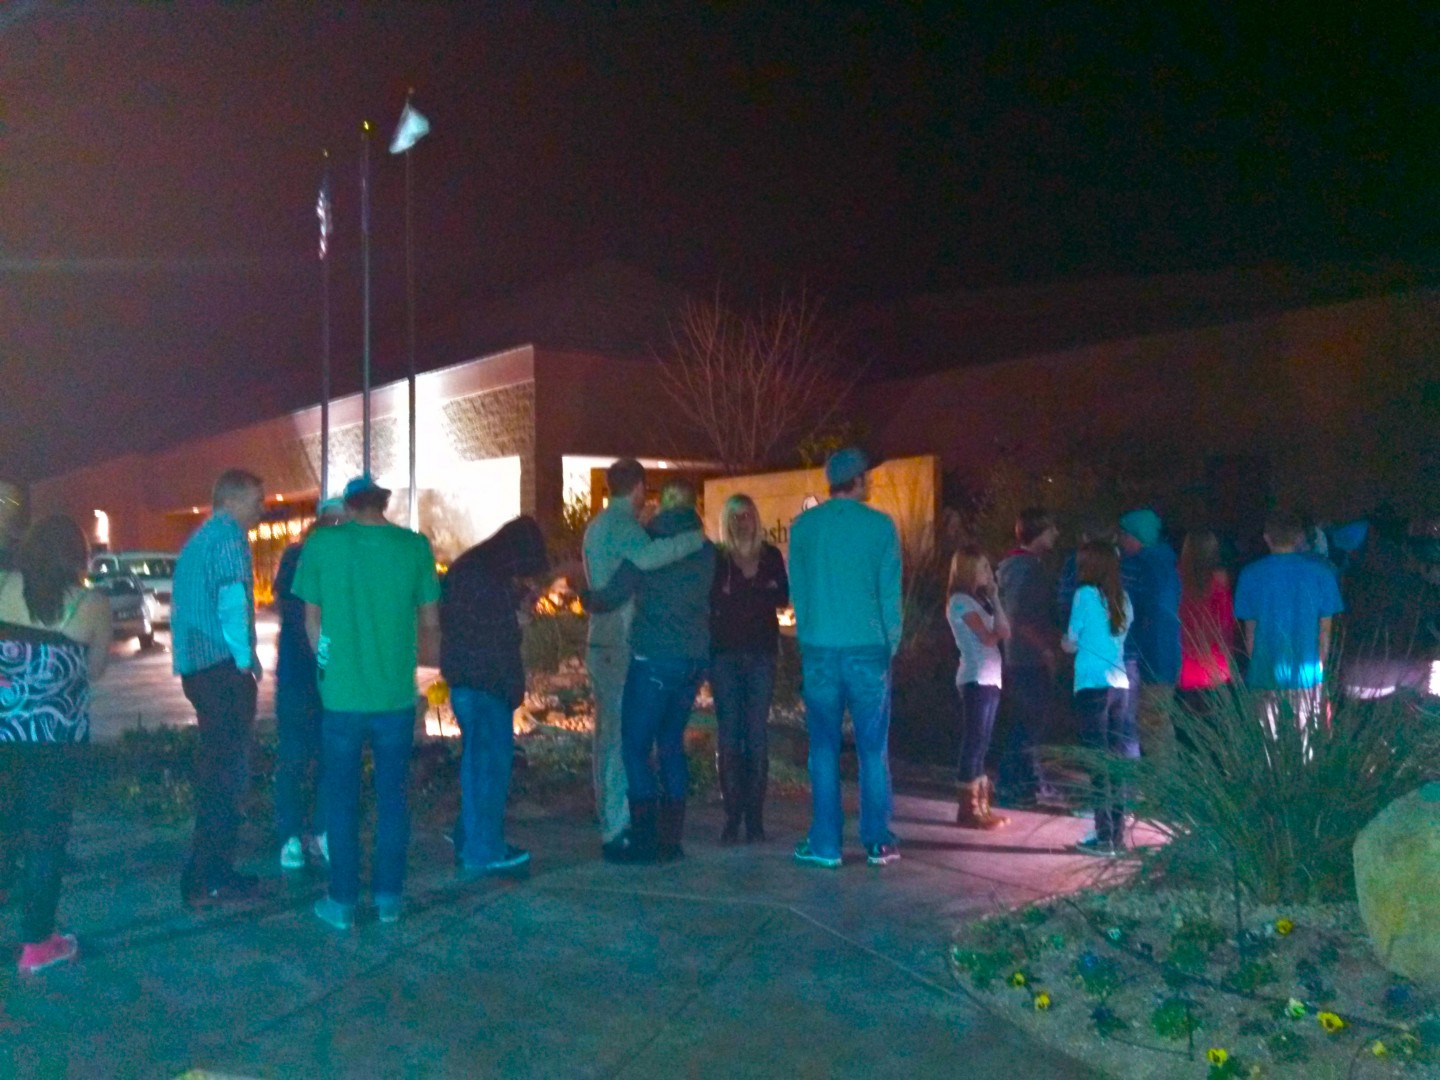 Entrance line at 8:14 p.m. for 'The Big Event' at the Washington Community Center